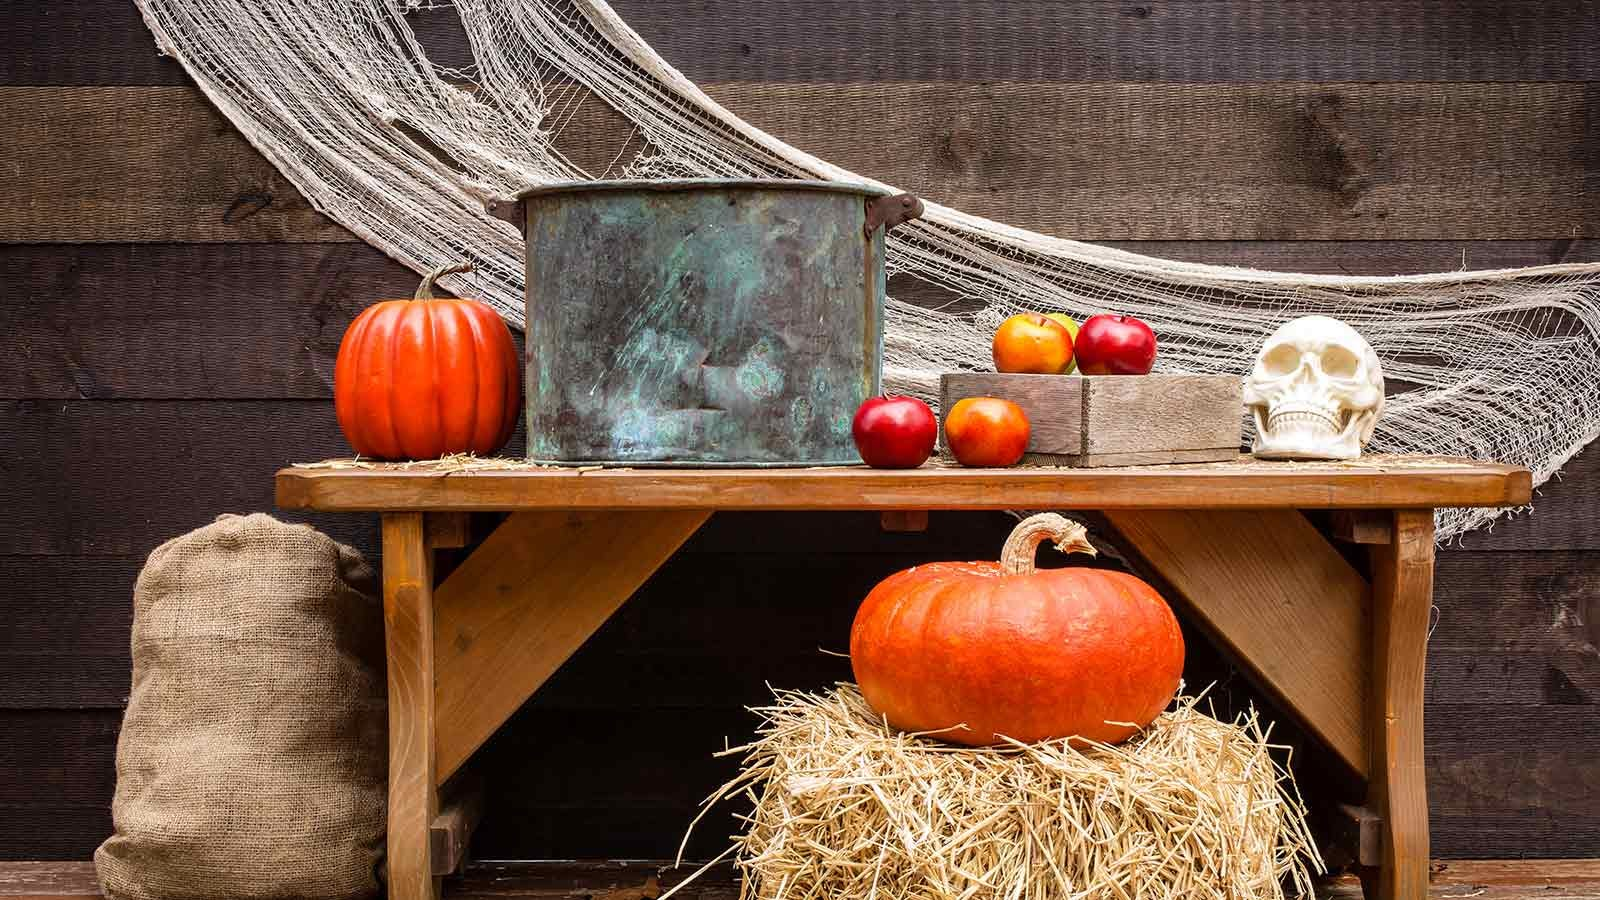 Apple bobbing station in a barn surrounded by apples, pumpkins, and a fake human skull.